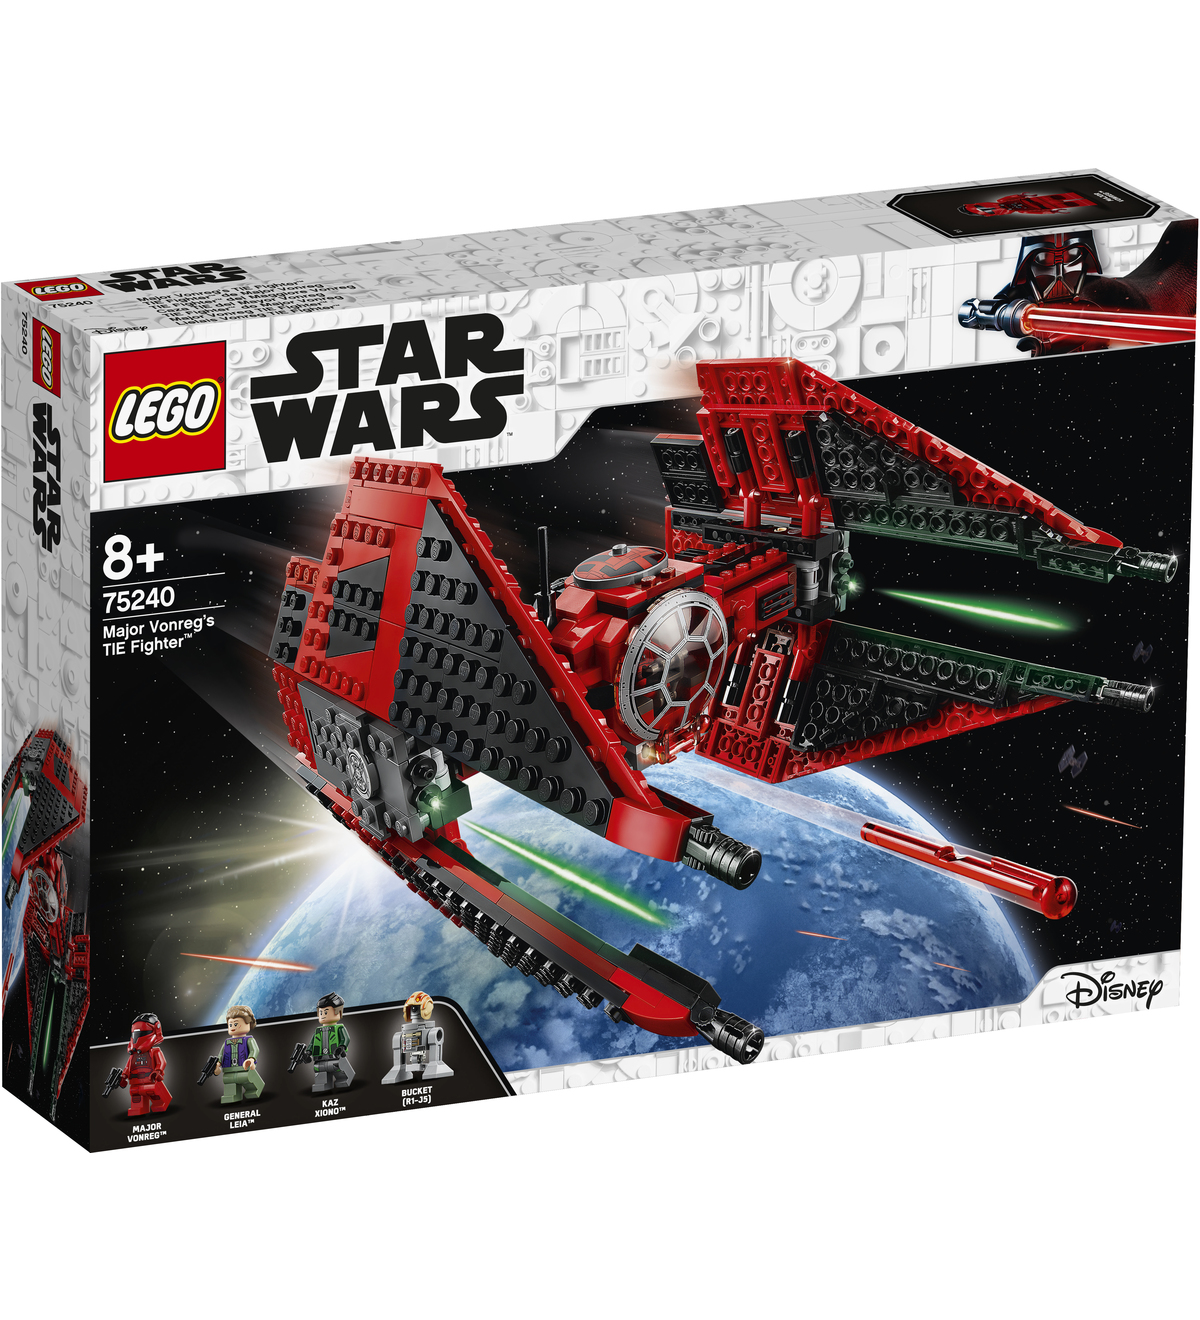 lego star wars spring 2019 box art and more product images. Black Bedroom Furniture Sets. Home Design Ideas